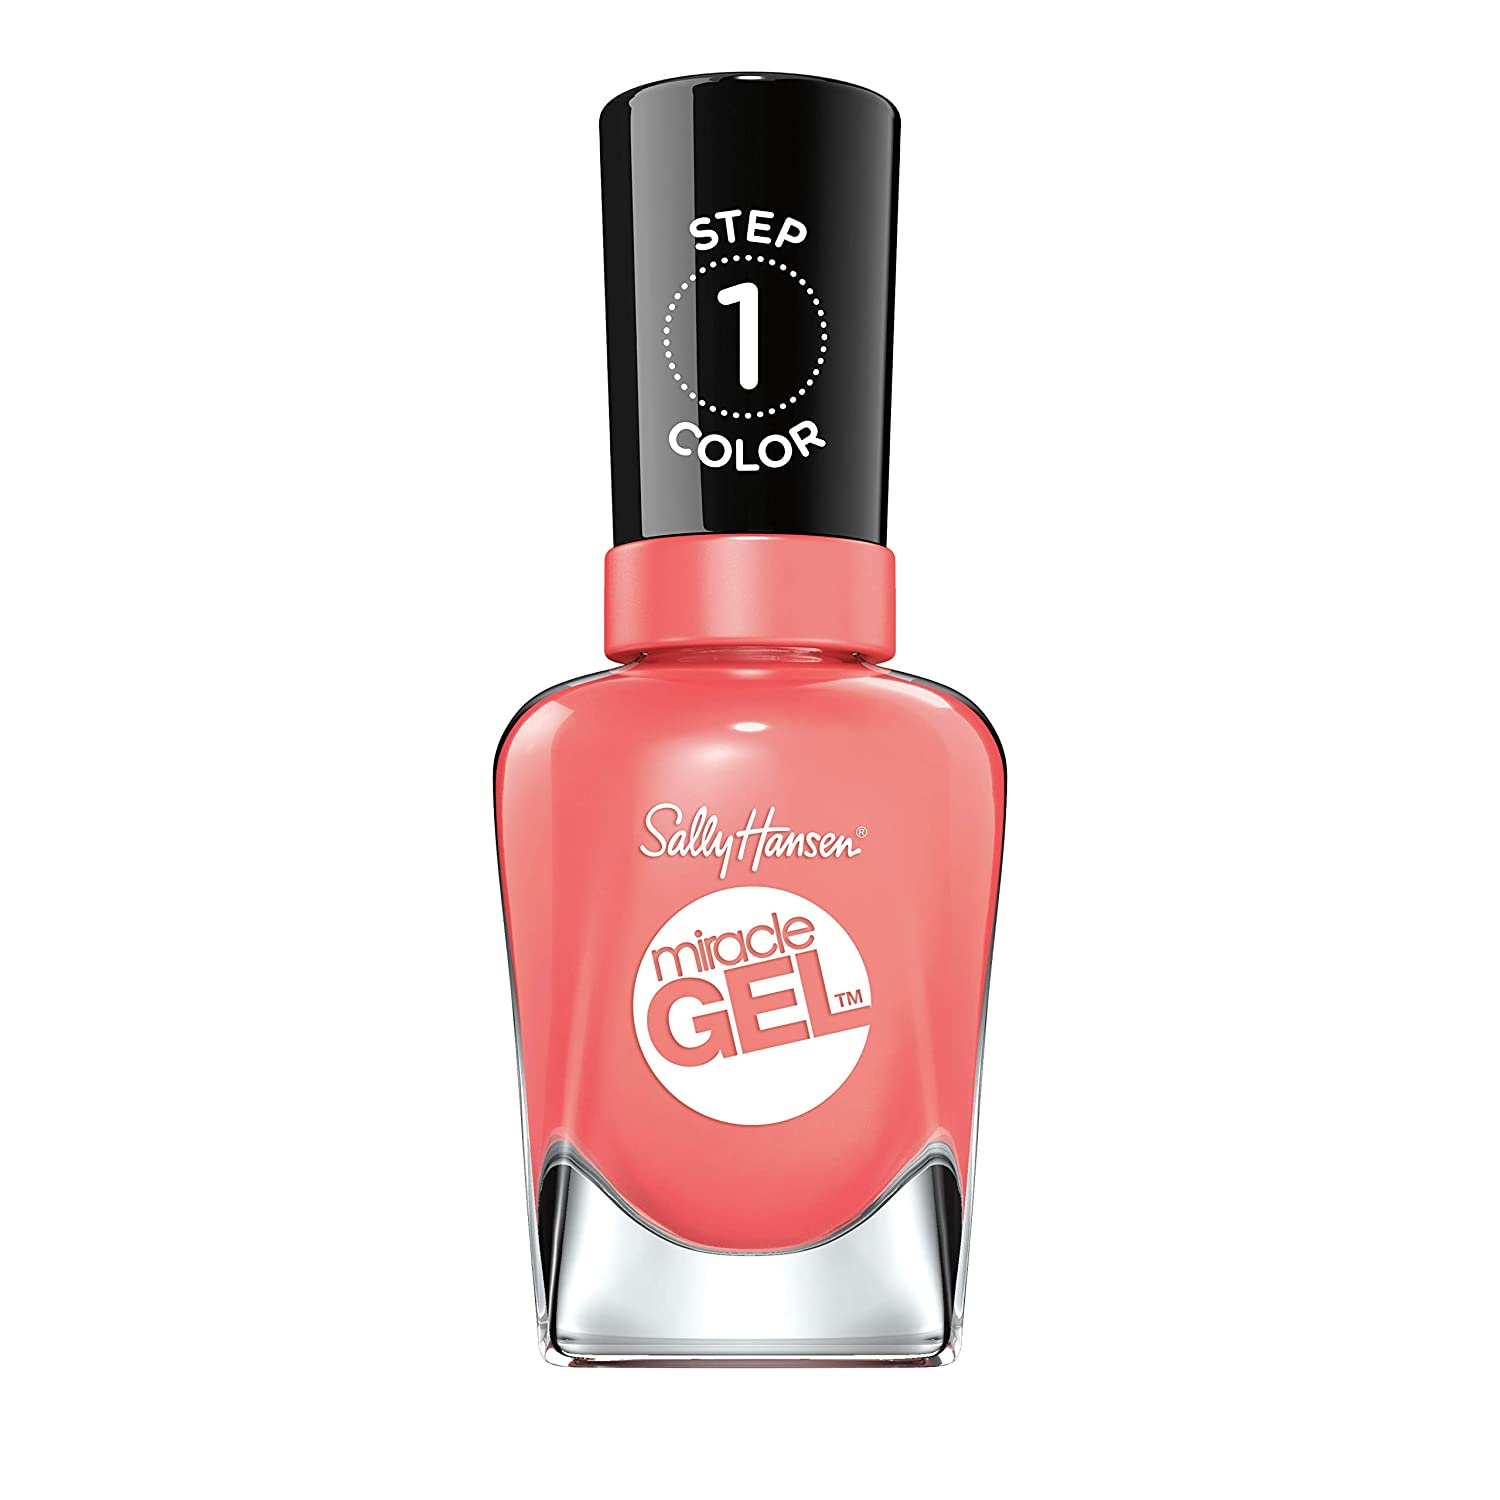 Sally Hansen Miracle Gel Nail Polish, Malibu Peach, Pack of 1